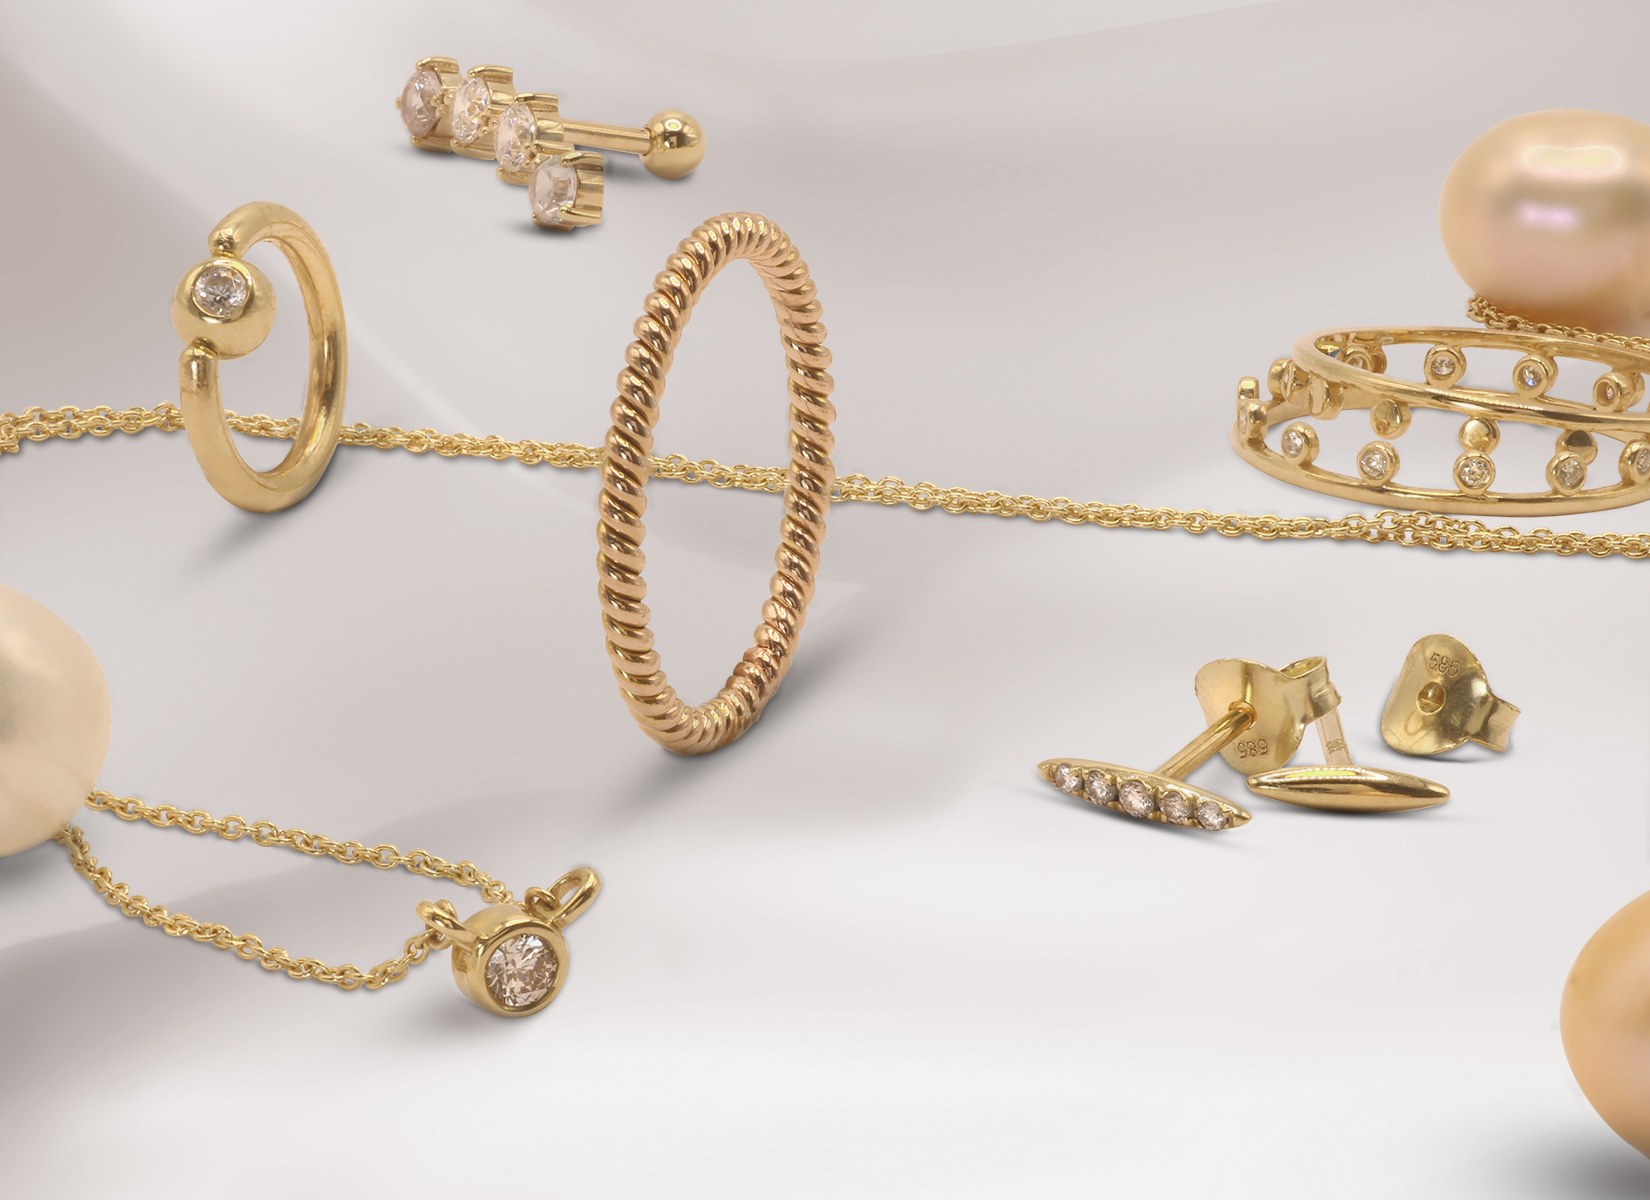 Wholesale Gold Jewelry Manufacturer